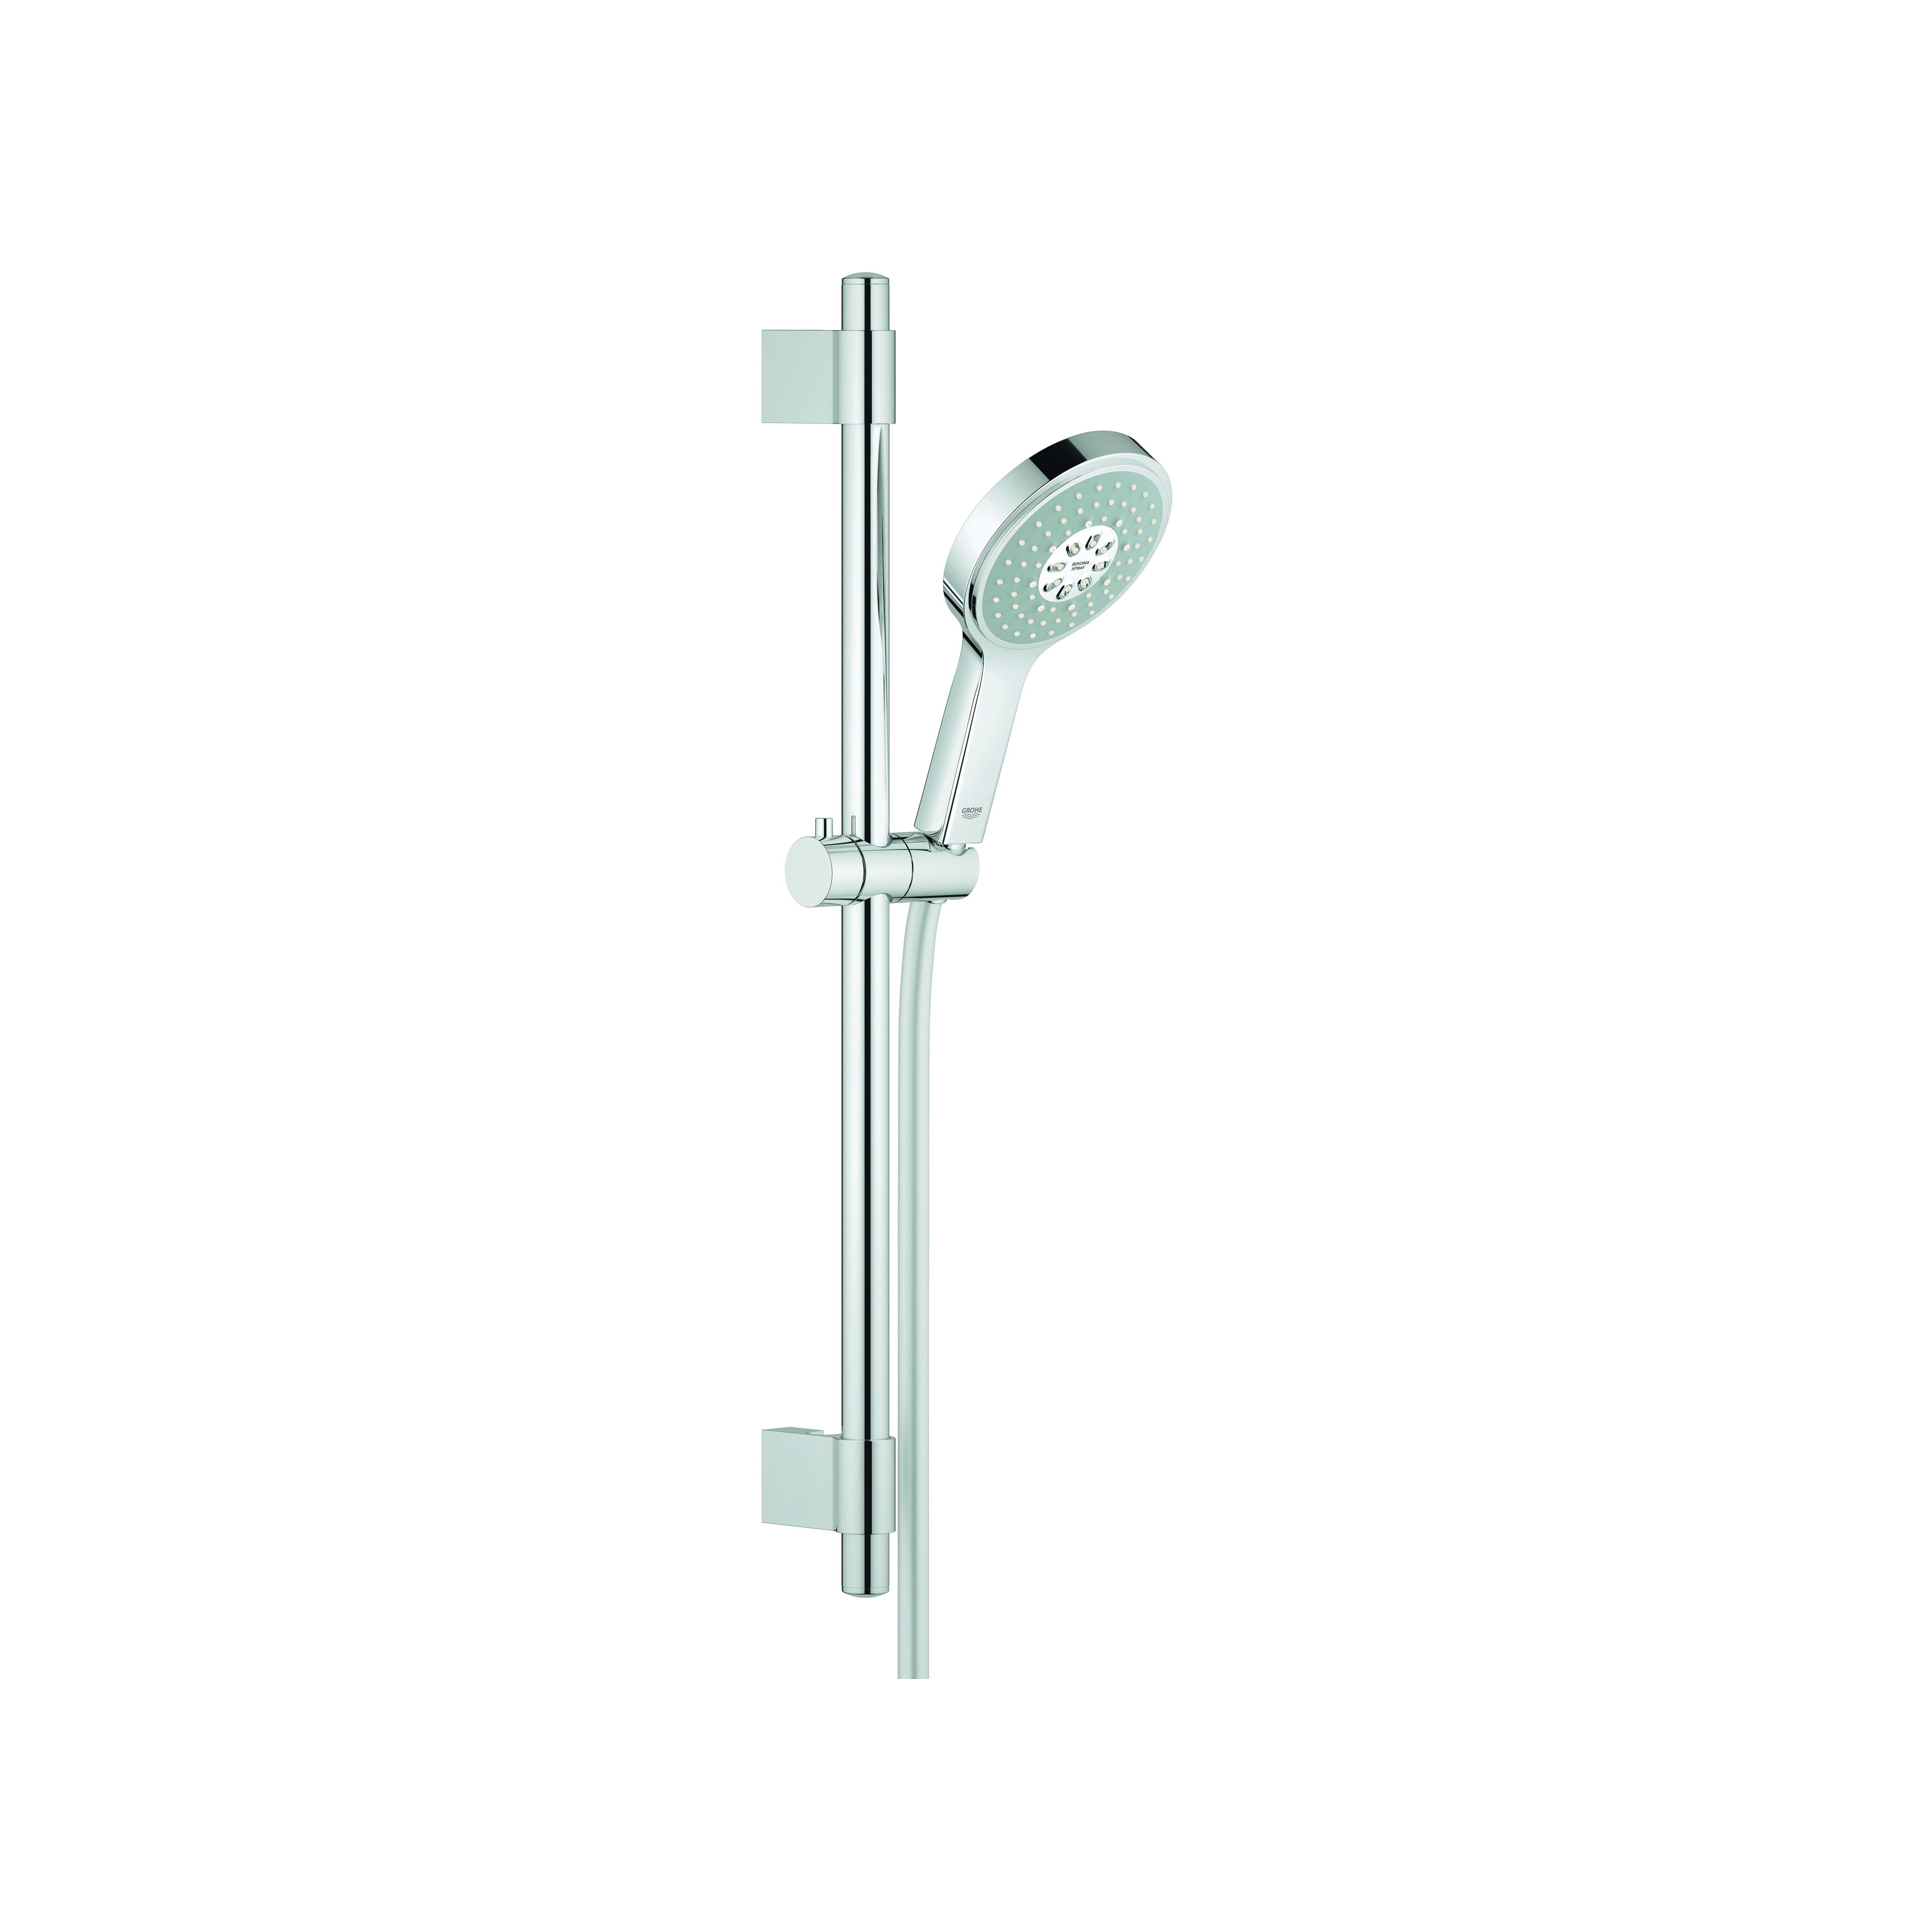 GROHE 27732000 Power&Soul® Cosmopolitan 130 Shower Set, 2.5 gpm, 69 in L Hose, G-1/2, Slide Bar: Yes, Chrome Plated, Import